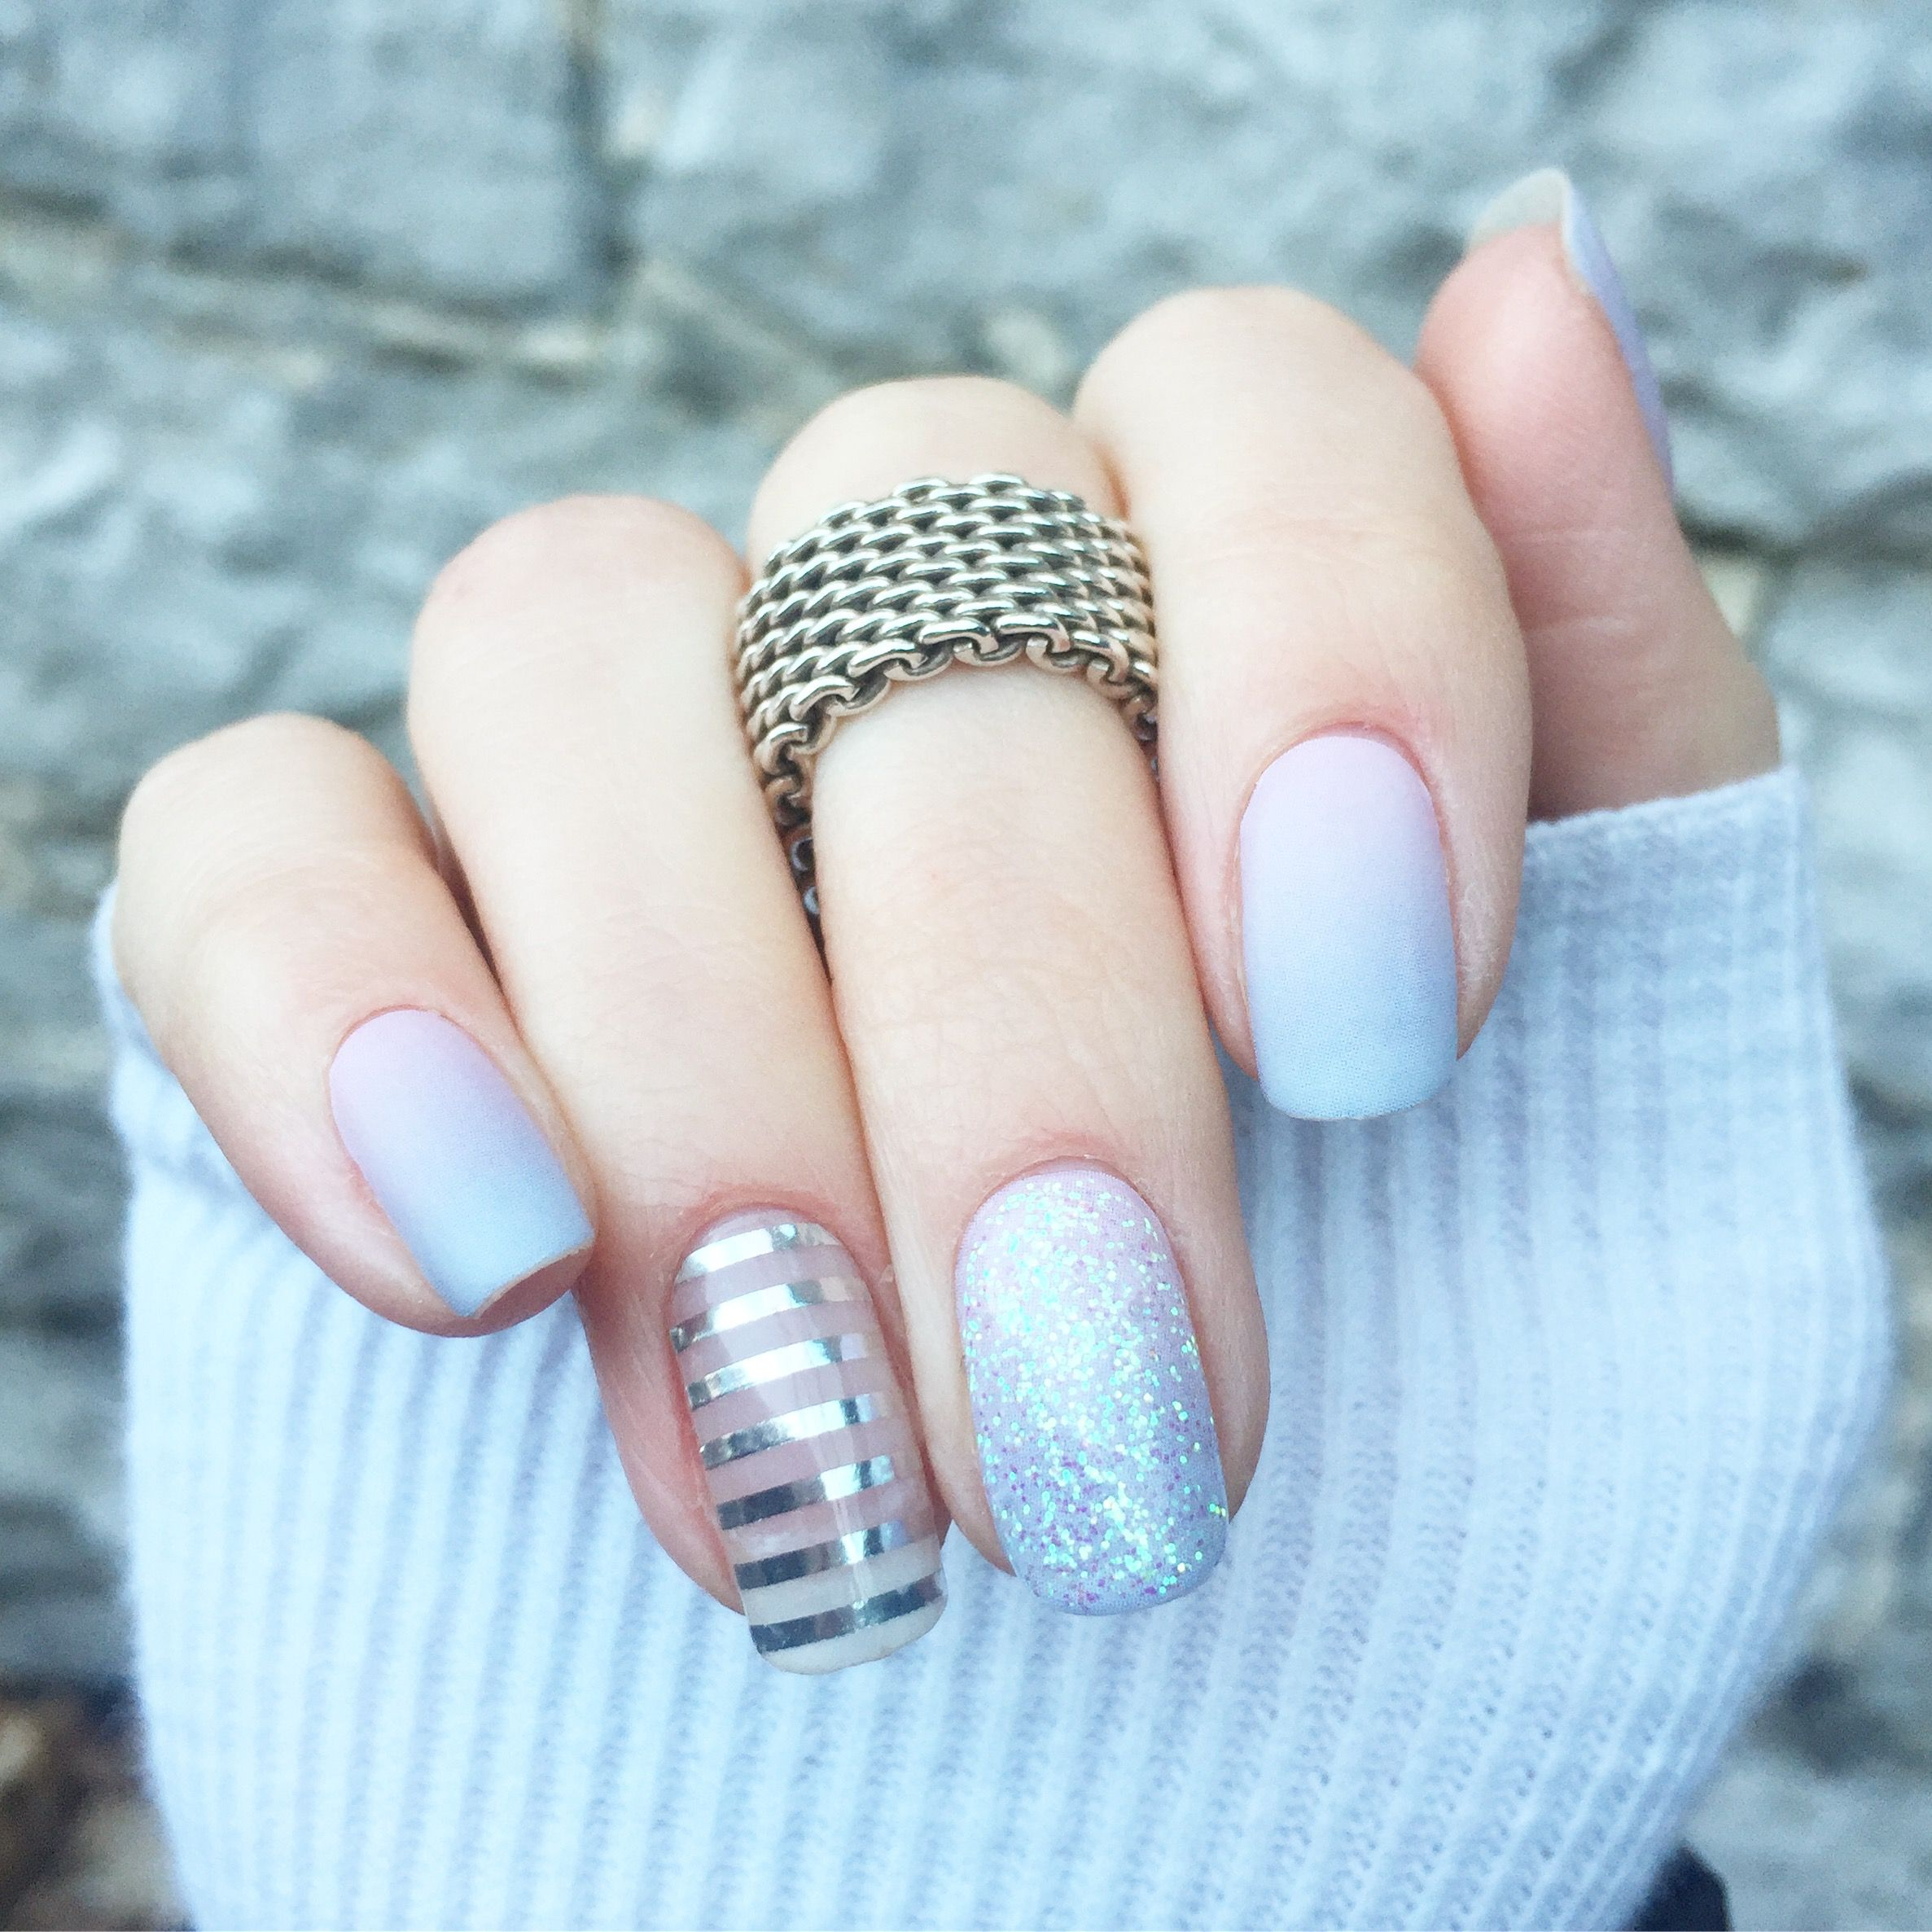 Jamberry mani perfect for Spring! #jamberry #cottoncandykissesjn ...